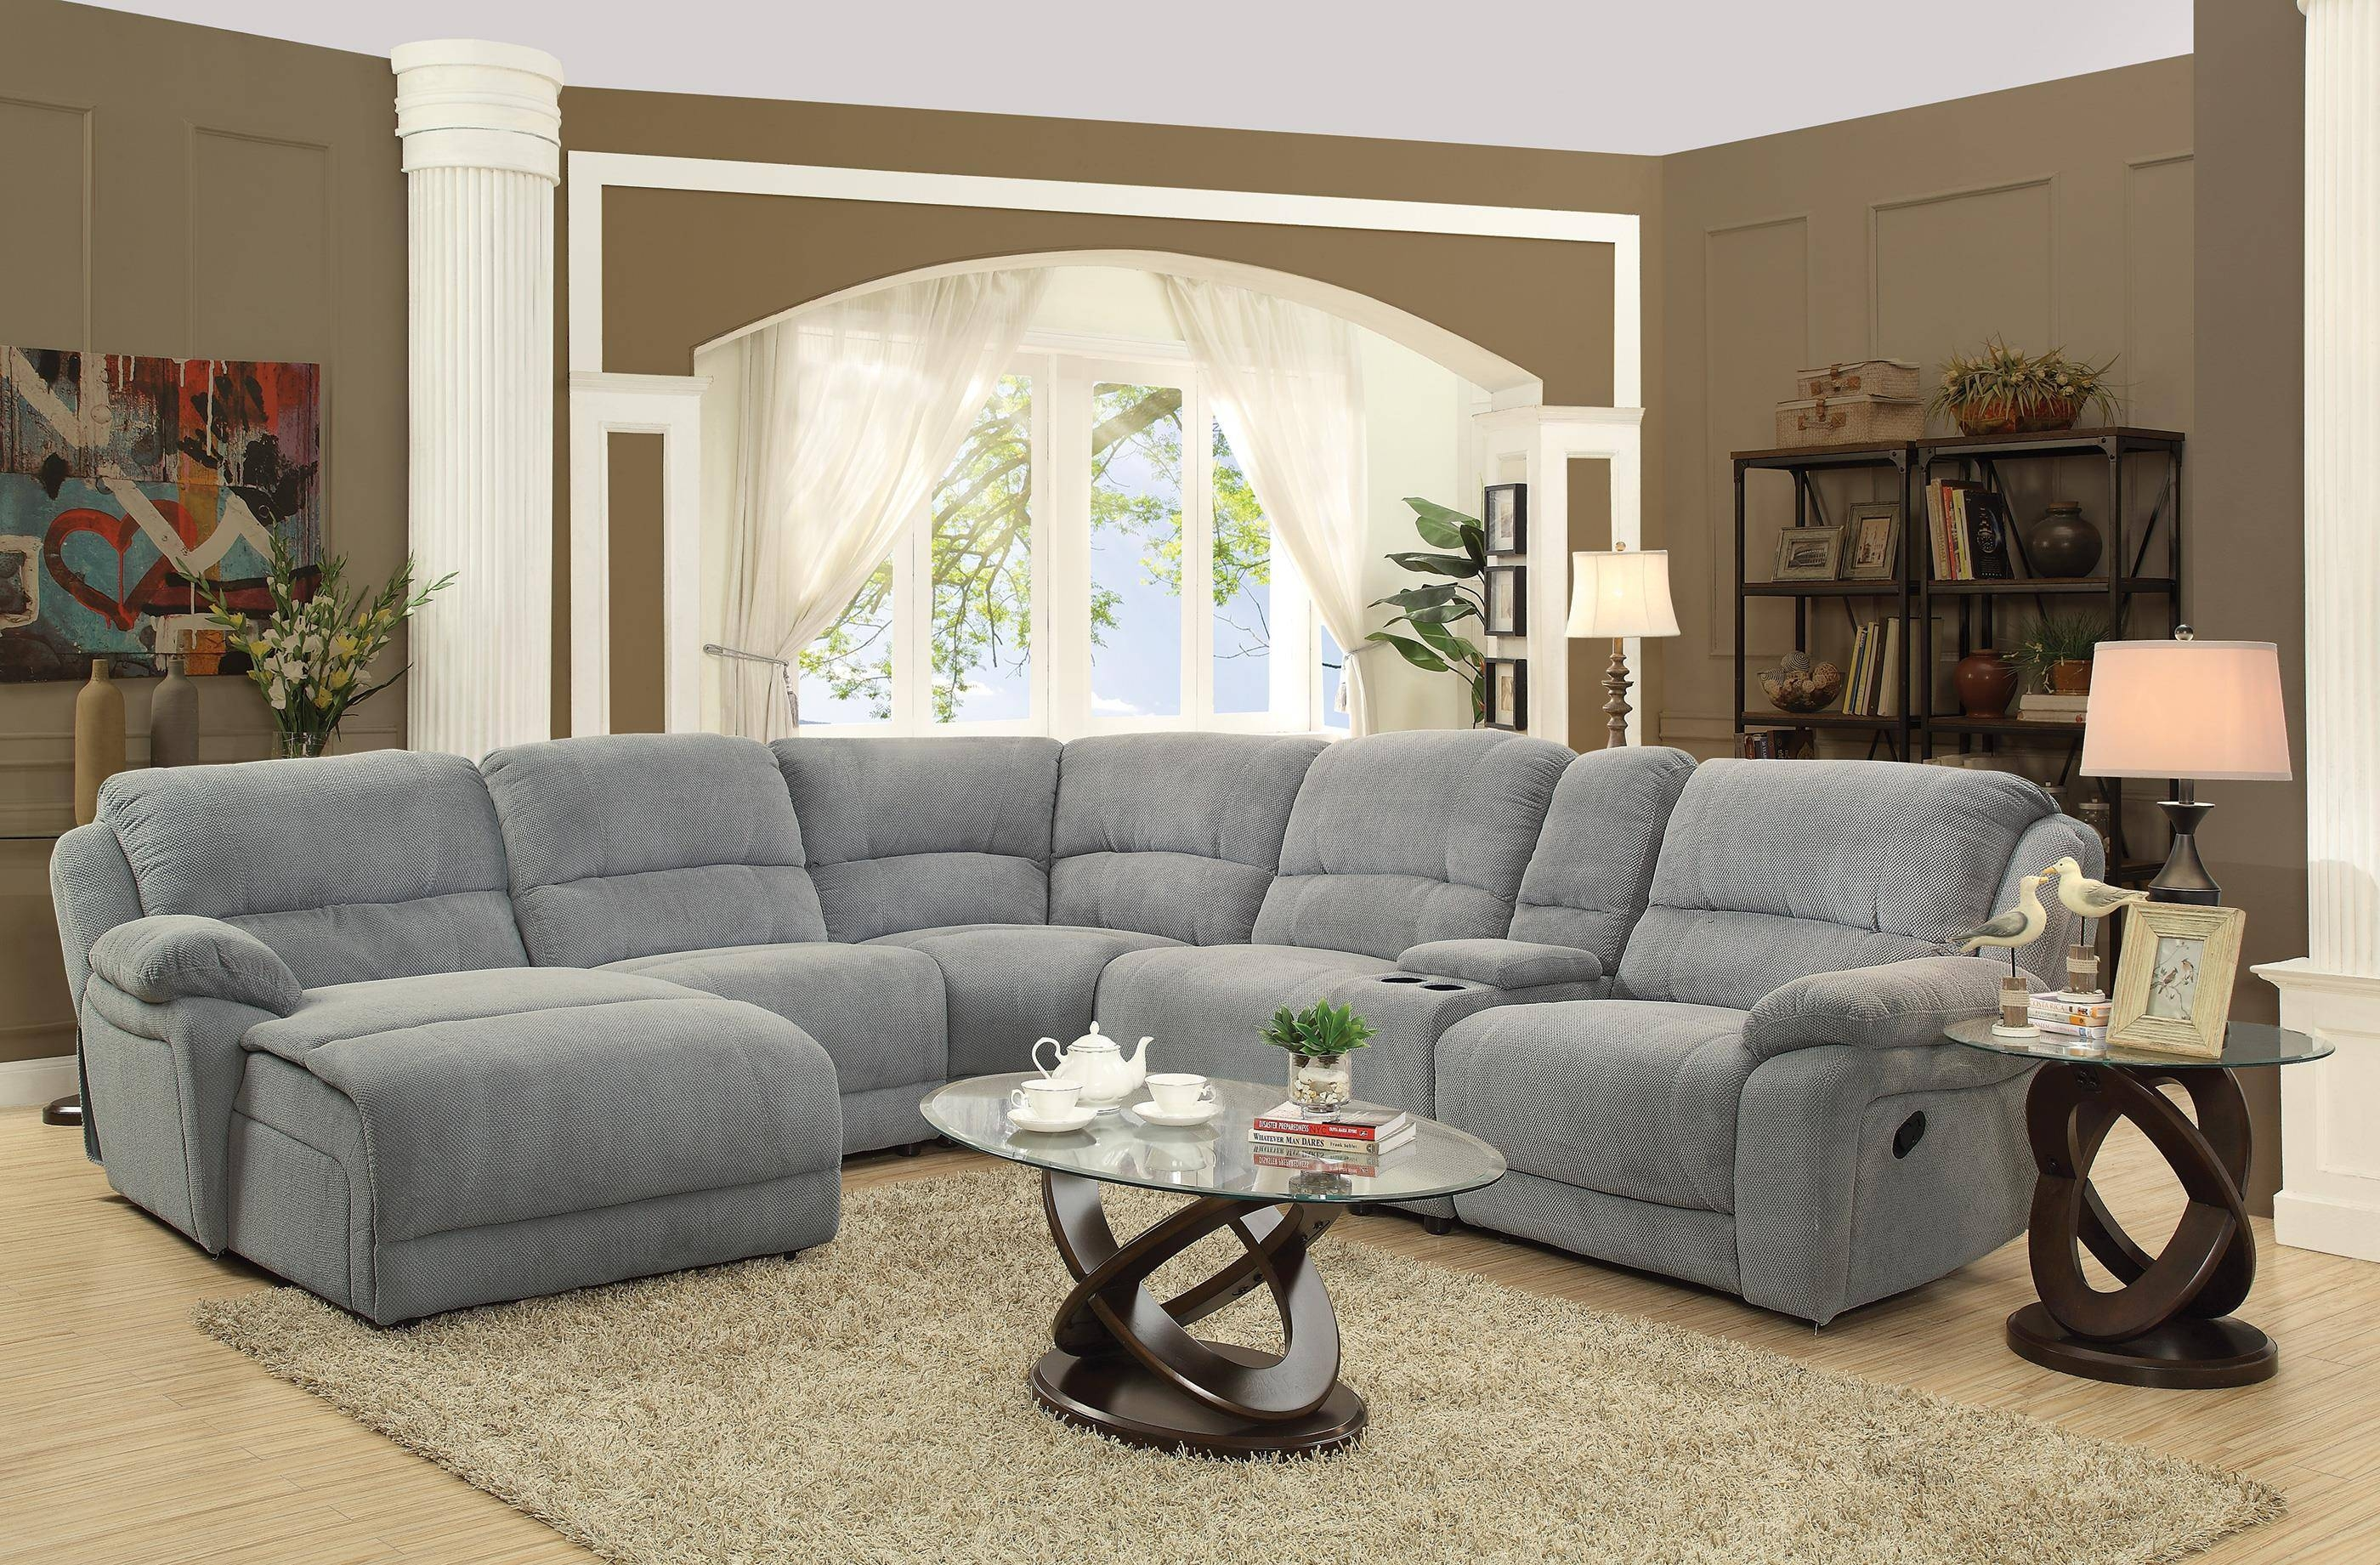 Coaster Sectional Recliner Sofa | Centerfieldbar pertaining to Coaster Sectional Sofas (Image 12 of 15)